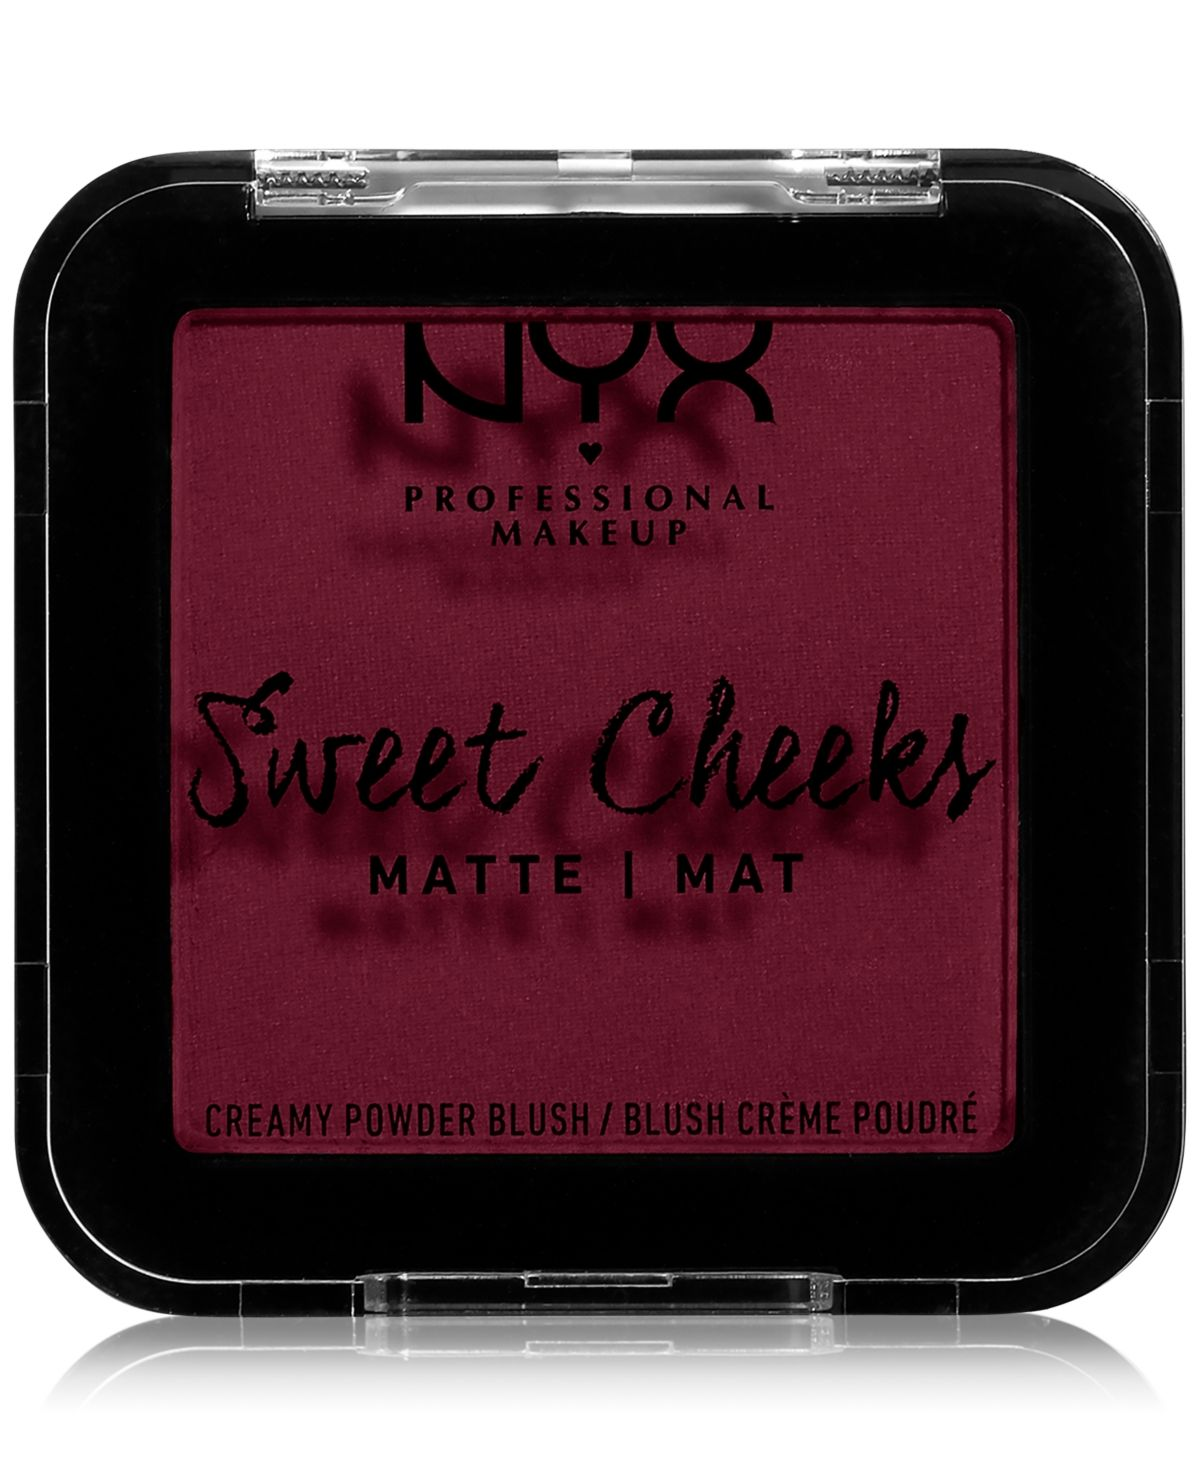 Nyx Professional Makeup Sweet Cheeks Creamy Powder Matte Blush Reviews Makeup Beauty Macy S In 2020 Nyx Professional Makeup Matte Blush Professional Makeup